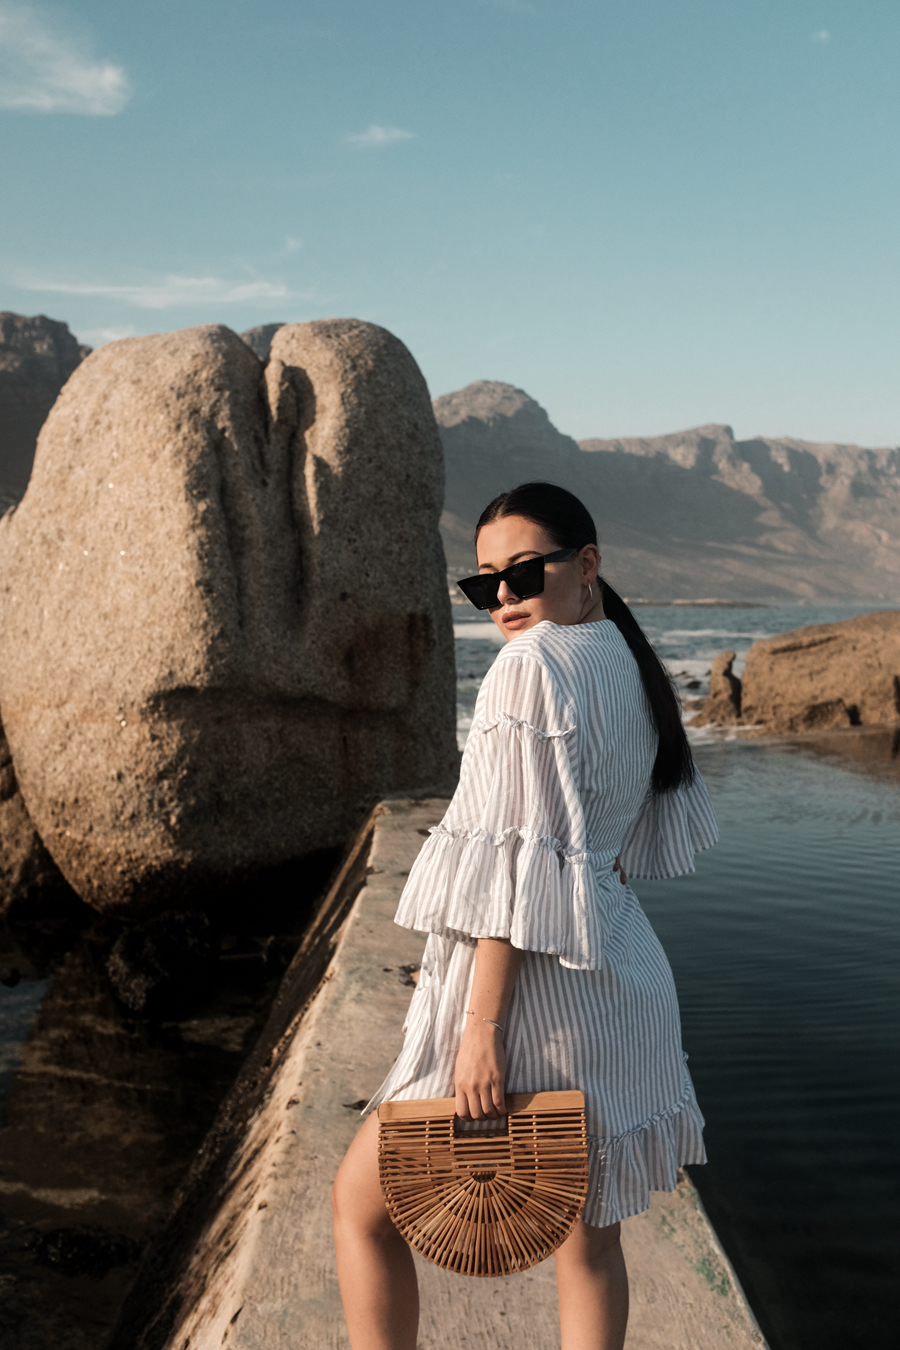 magdalena+fuez+thesecondface+blogger+deutschland+kapstadt+muenchen+cape+town+camps+bay+beach+edited+the+label+africa+heat+sommer+outfits+cult+gaia+ark+bag